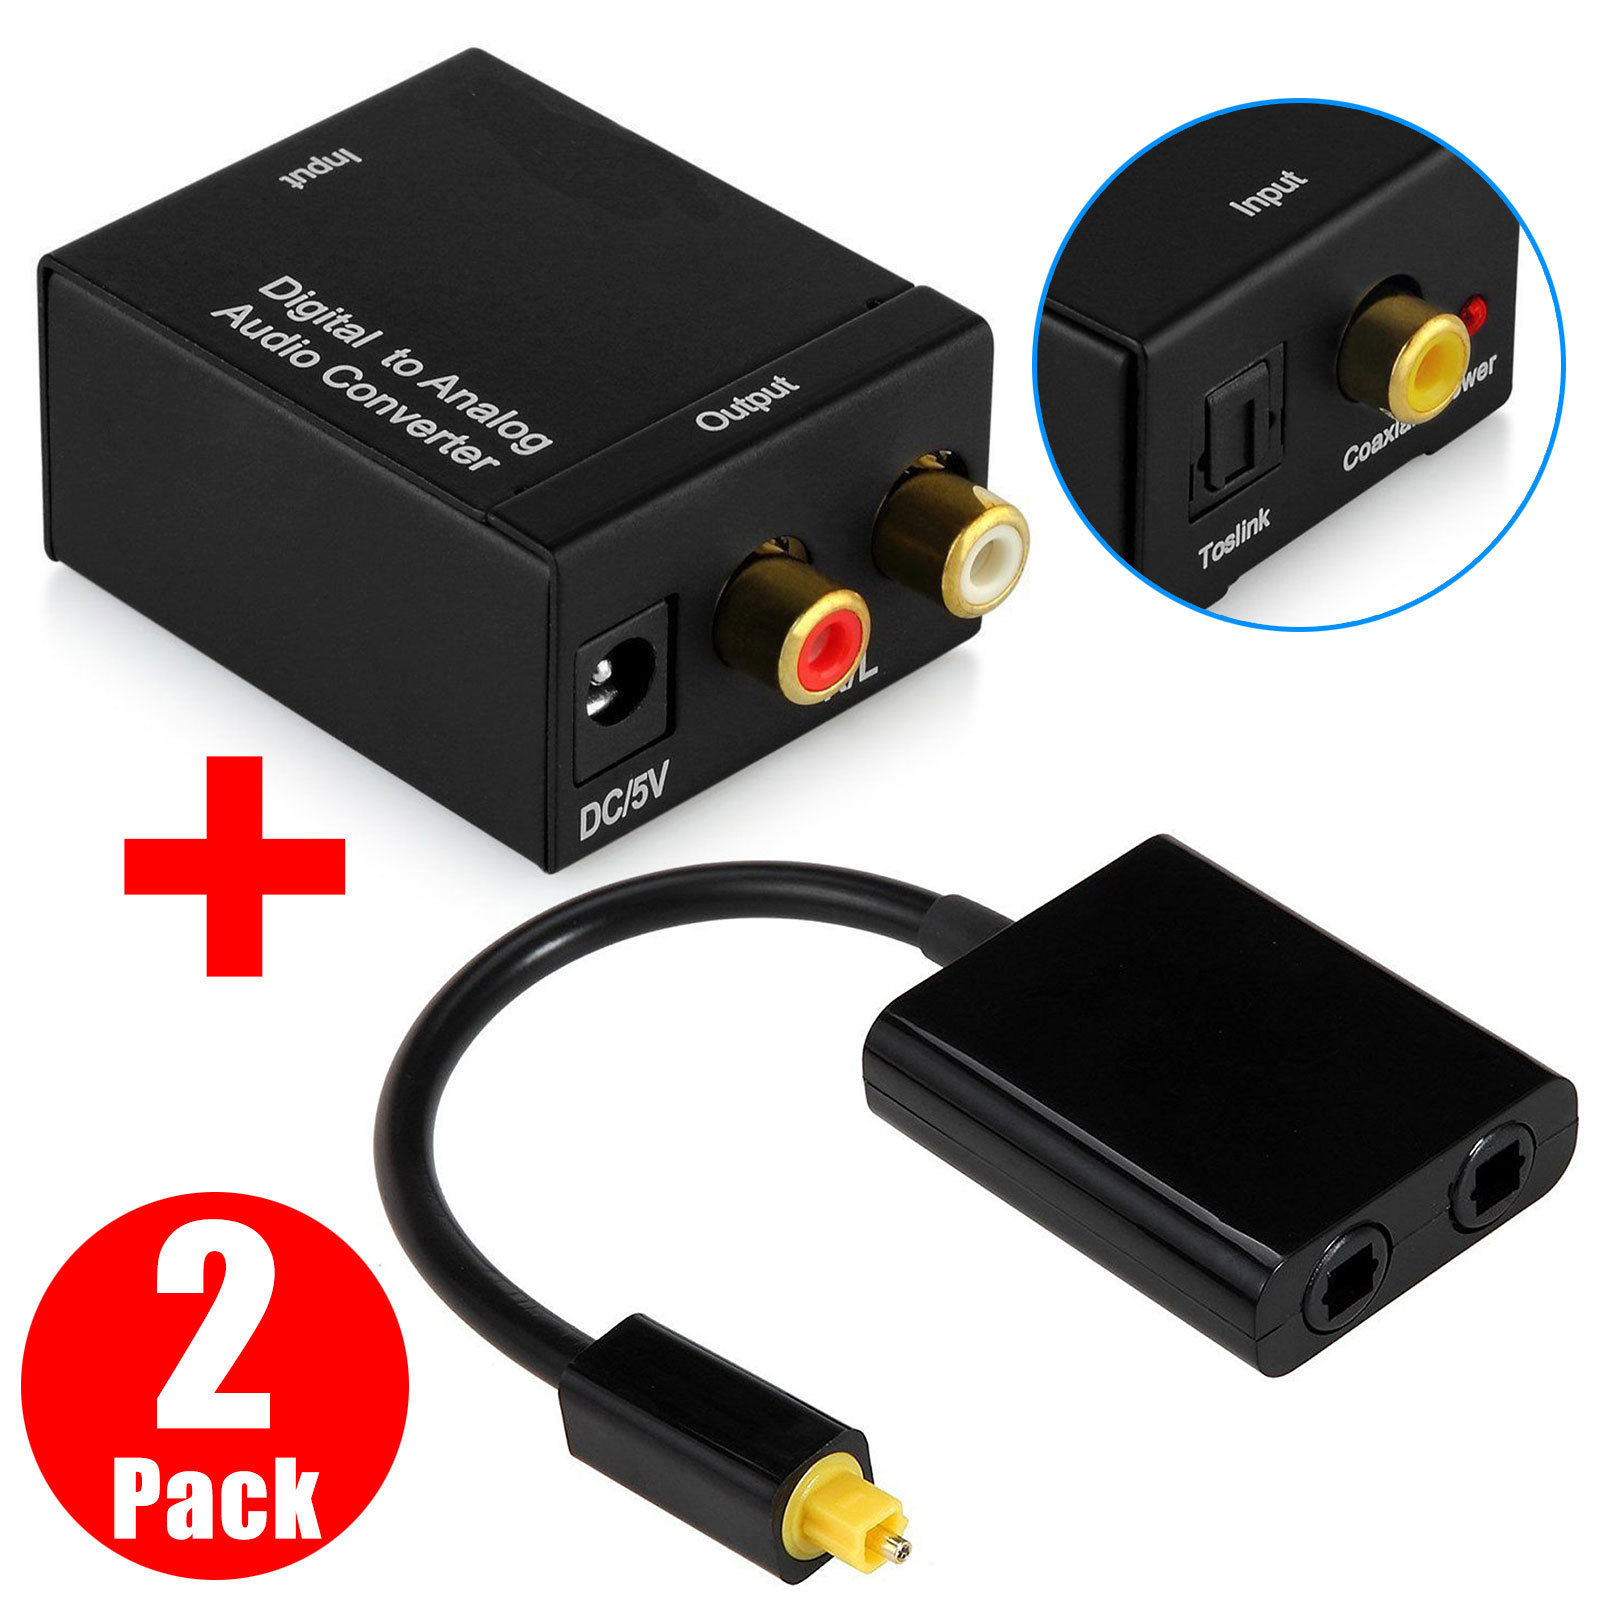 TSV Toslink Digital Optic Cable Splitter 1 to 2 With Coax to Analog Audio Converter Kit